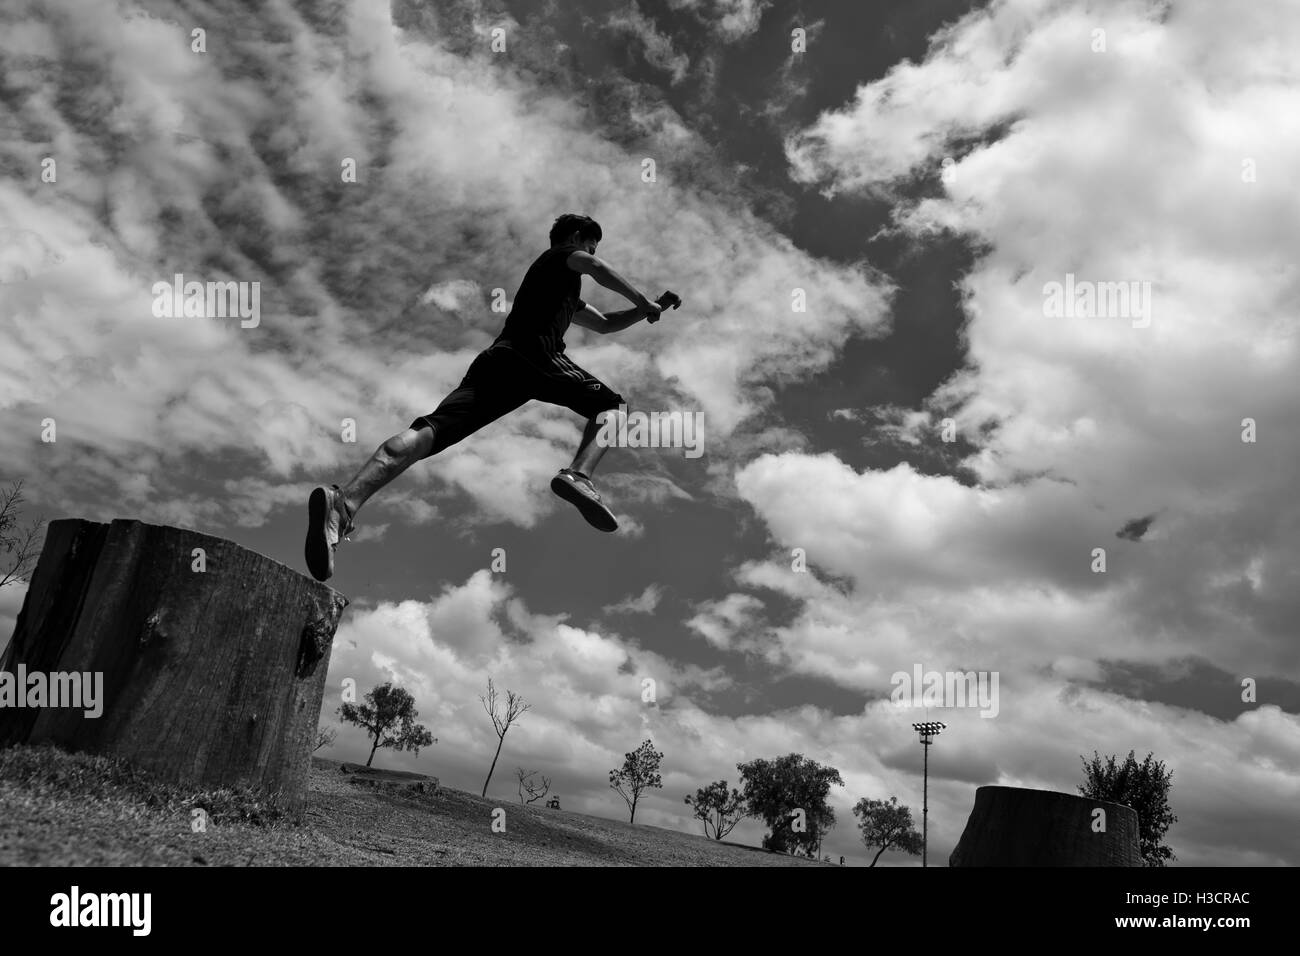 A Colombian parkour athlete performs a high jump during a free running training session in a park in Bogotá, - Stock Image